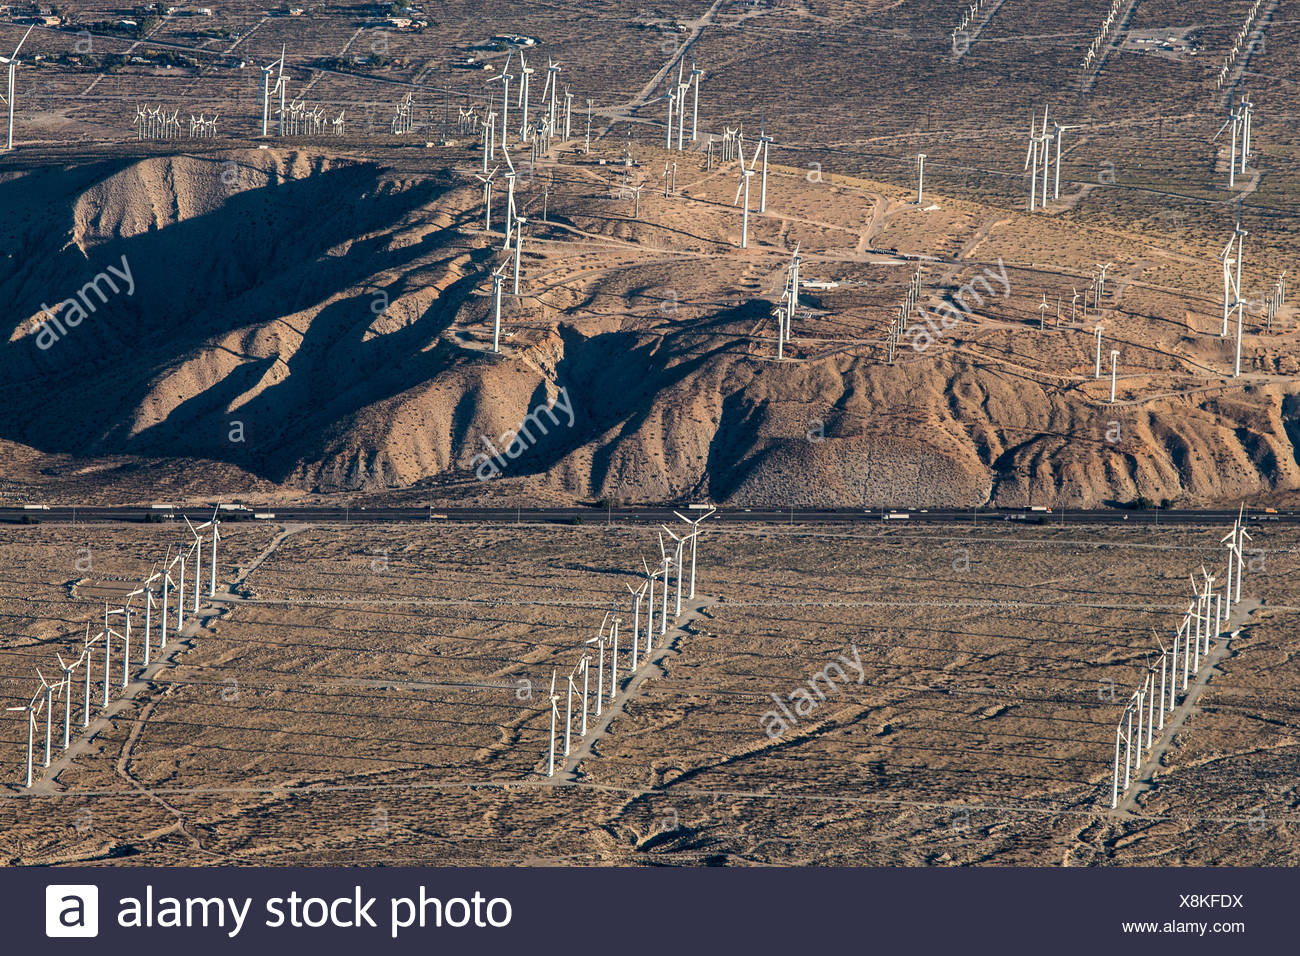 A portion of the more than 3,000 wind turbines at the San Gorgonio Pass Wind Farm outside Palm Springs, seen from atop the Palm Springs Aerial Tramway. The facility was developed beginning in the 1980s, and is one of three major wind farms in the state. - Stock Image